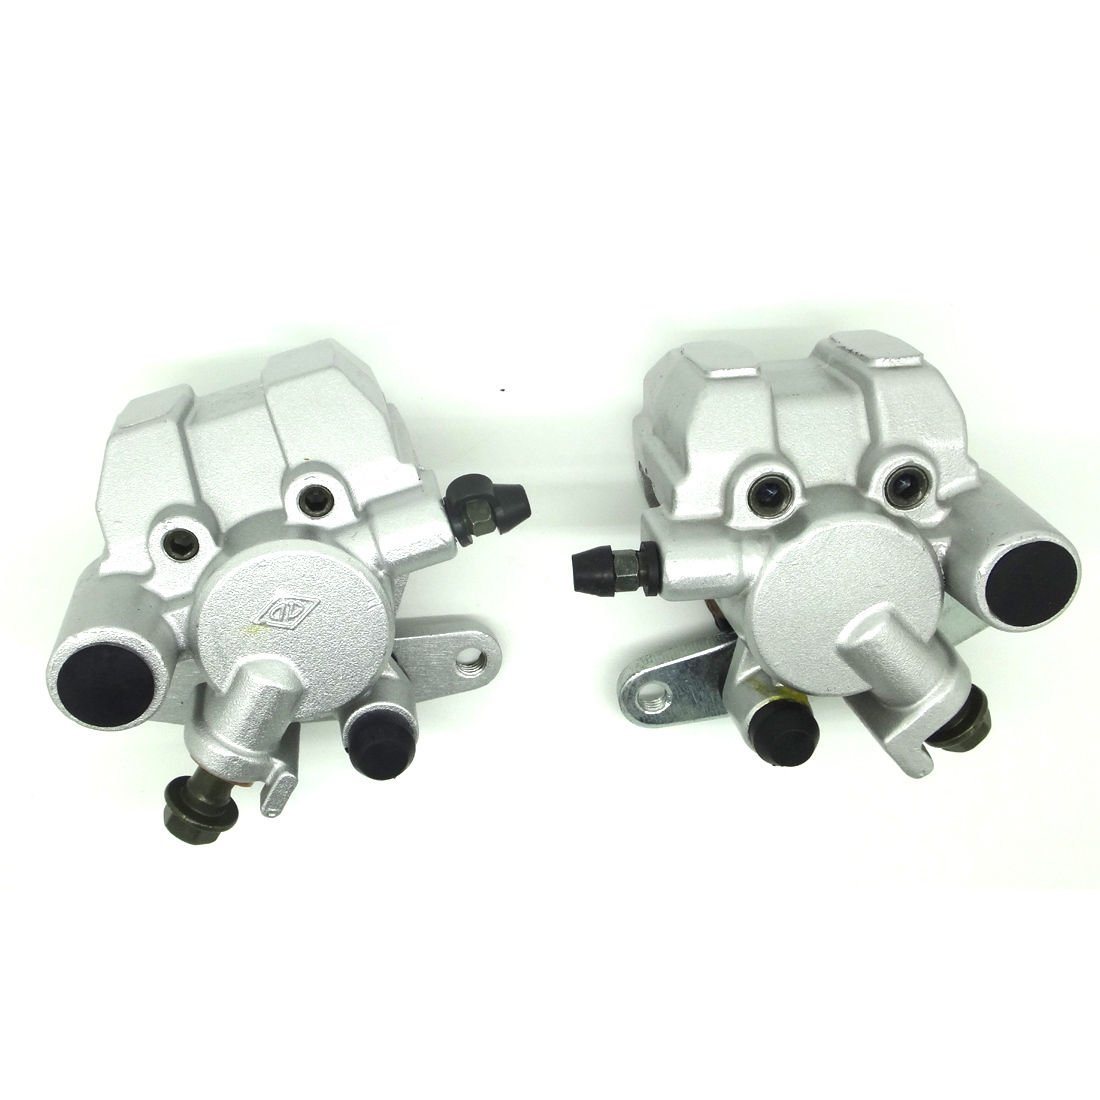 Conpus Front Brake Caliper Set For Suzuki Atv Ltz 400 Quad Sport 400 Lt-Z400Z 2003-2012 A2826